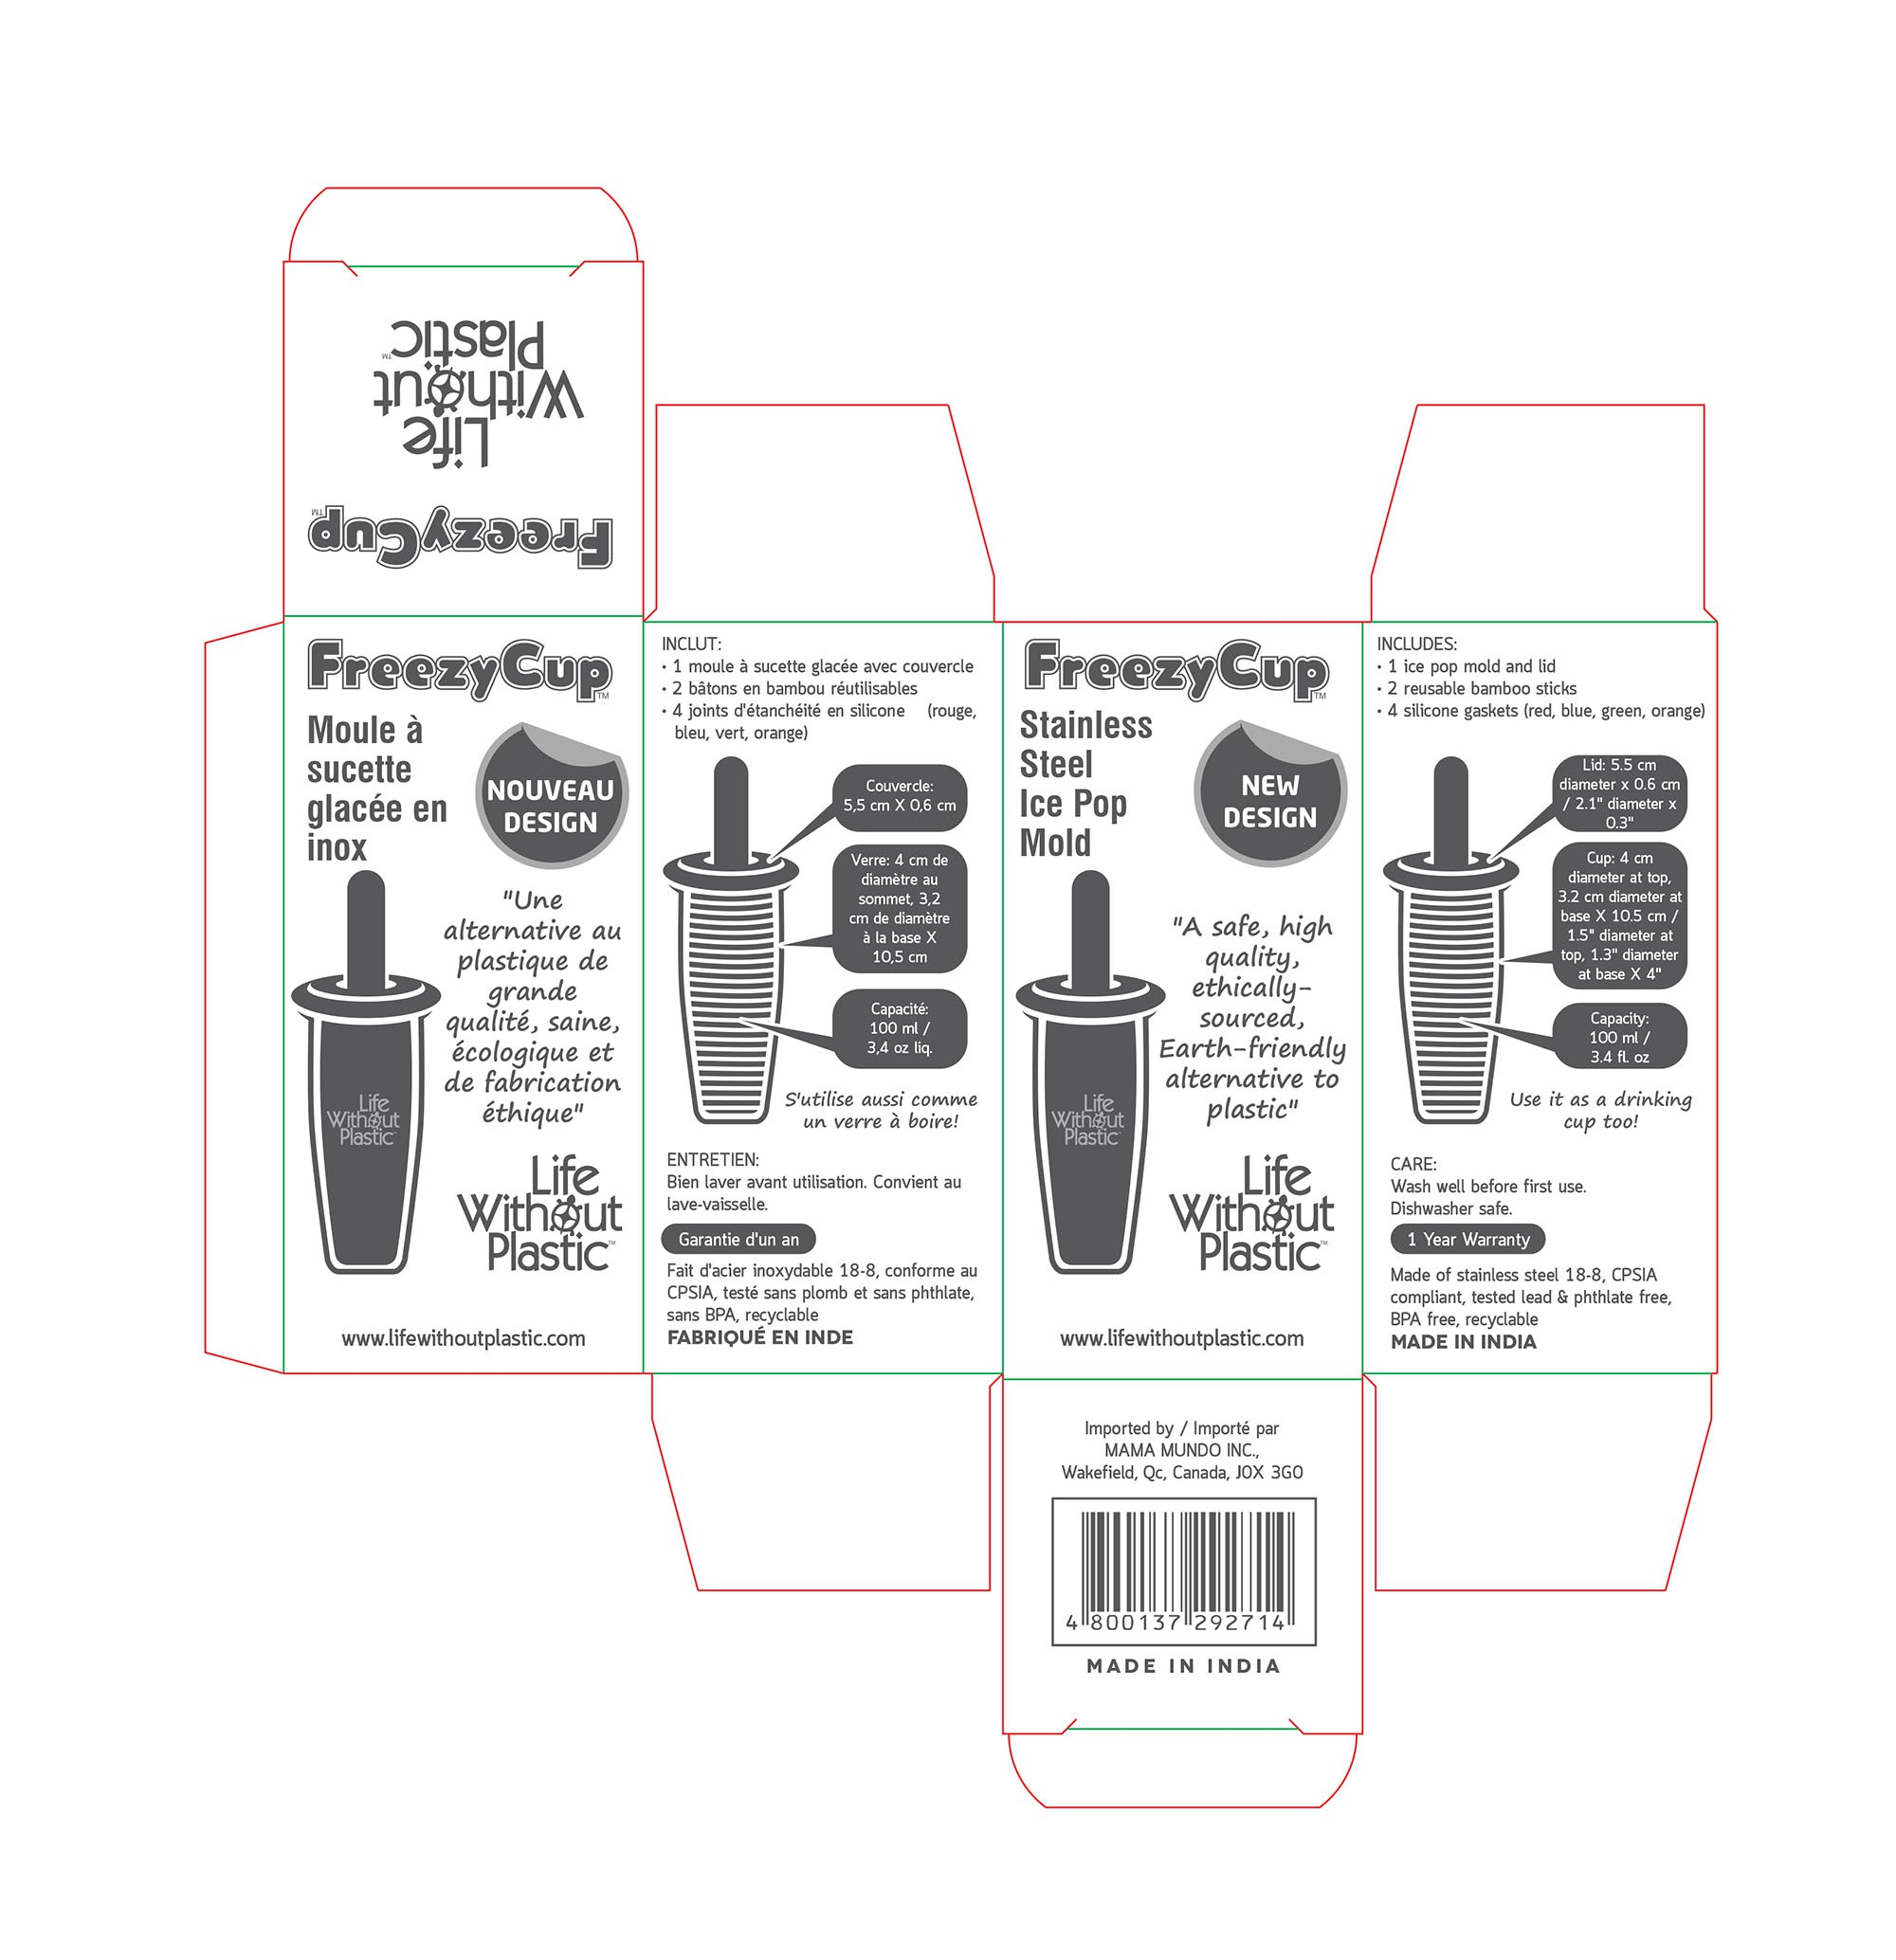 Packaging for Eco-Friendly Popsicle Mould